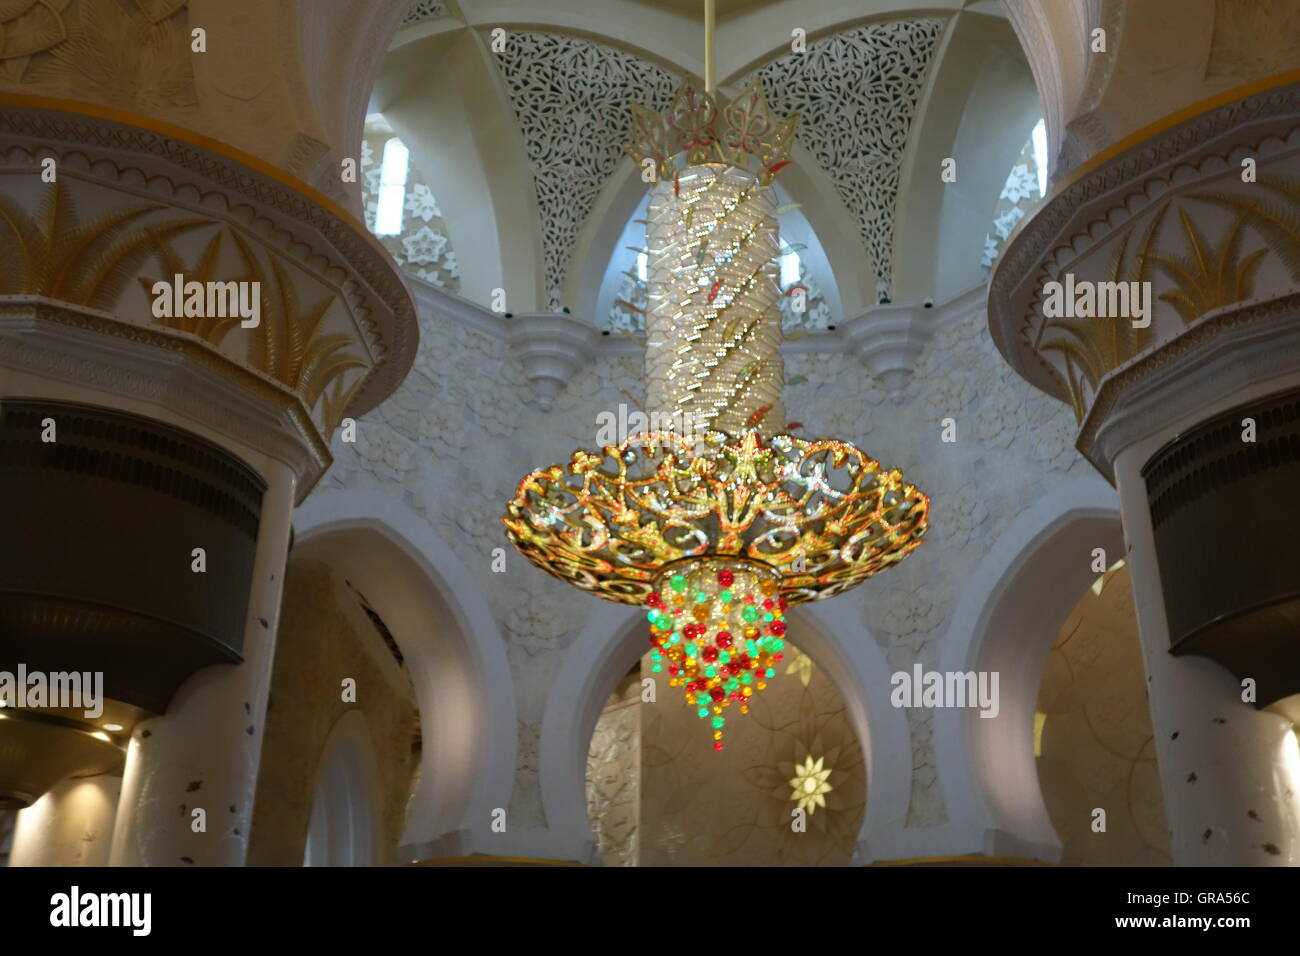 Golden Chandelier Abu Dhabi Mosque Stock Photo, Royalty Free Image ...